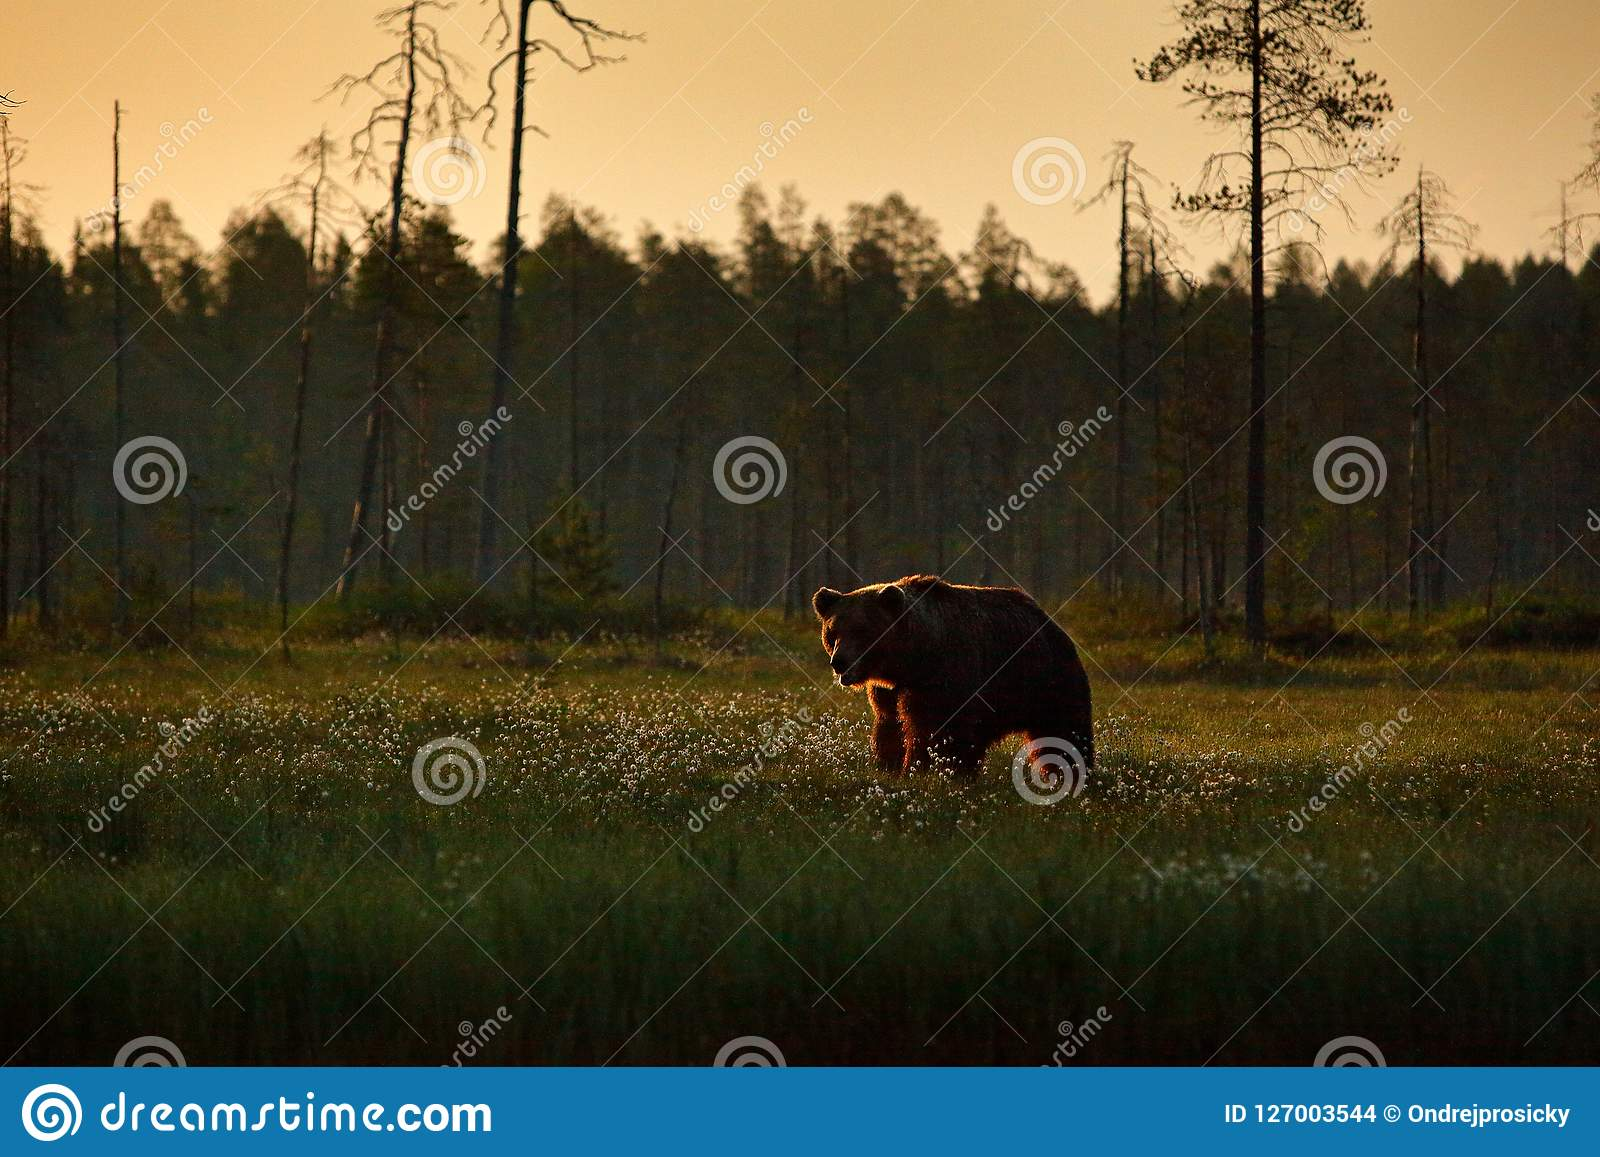 Morning light with big brown bear walking around lake in the morning light. Dangerous animal in nature forest and meadow habitat.